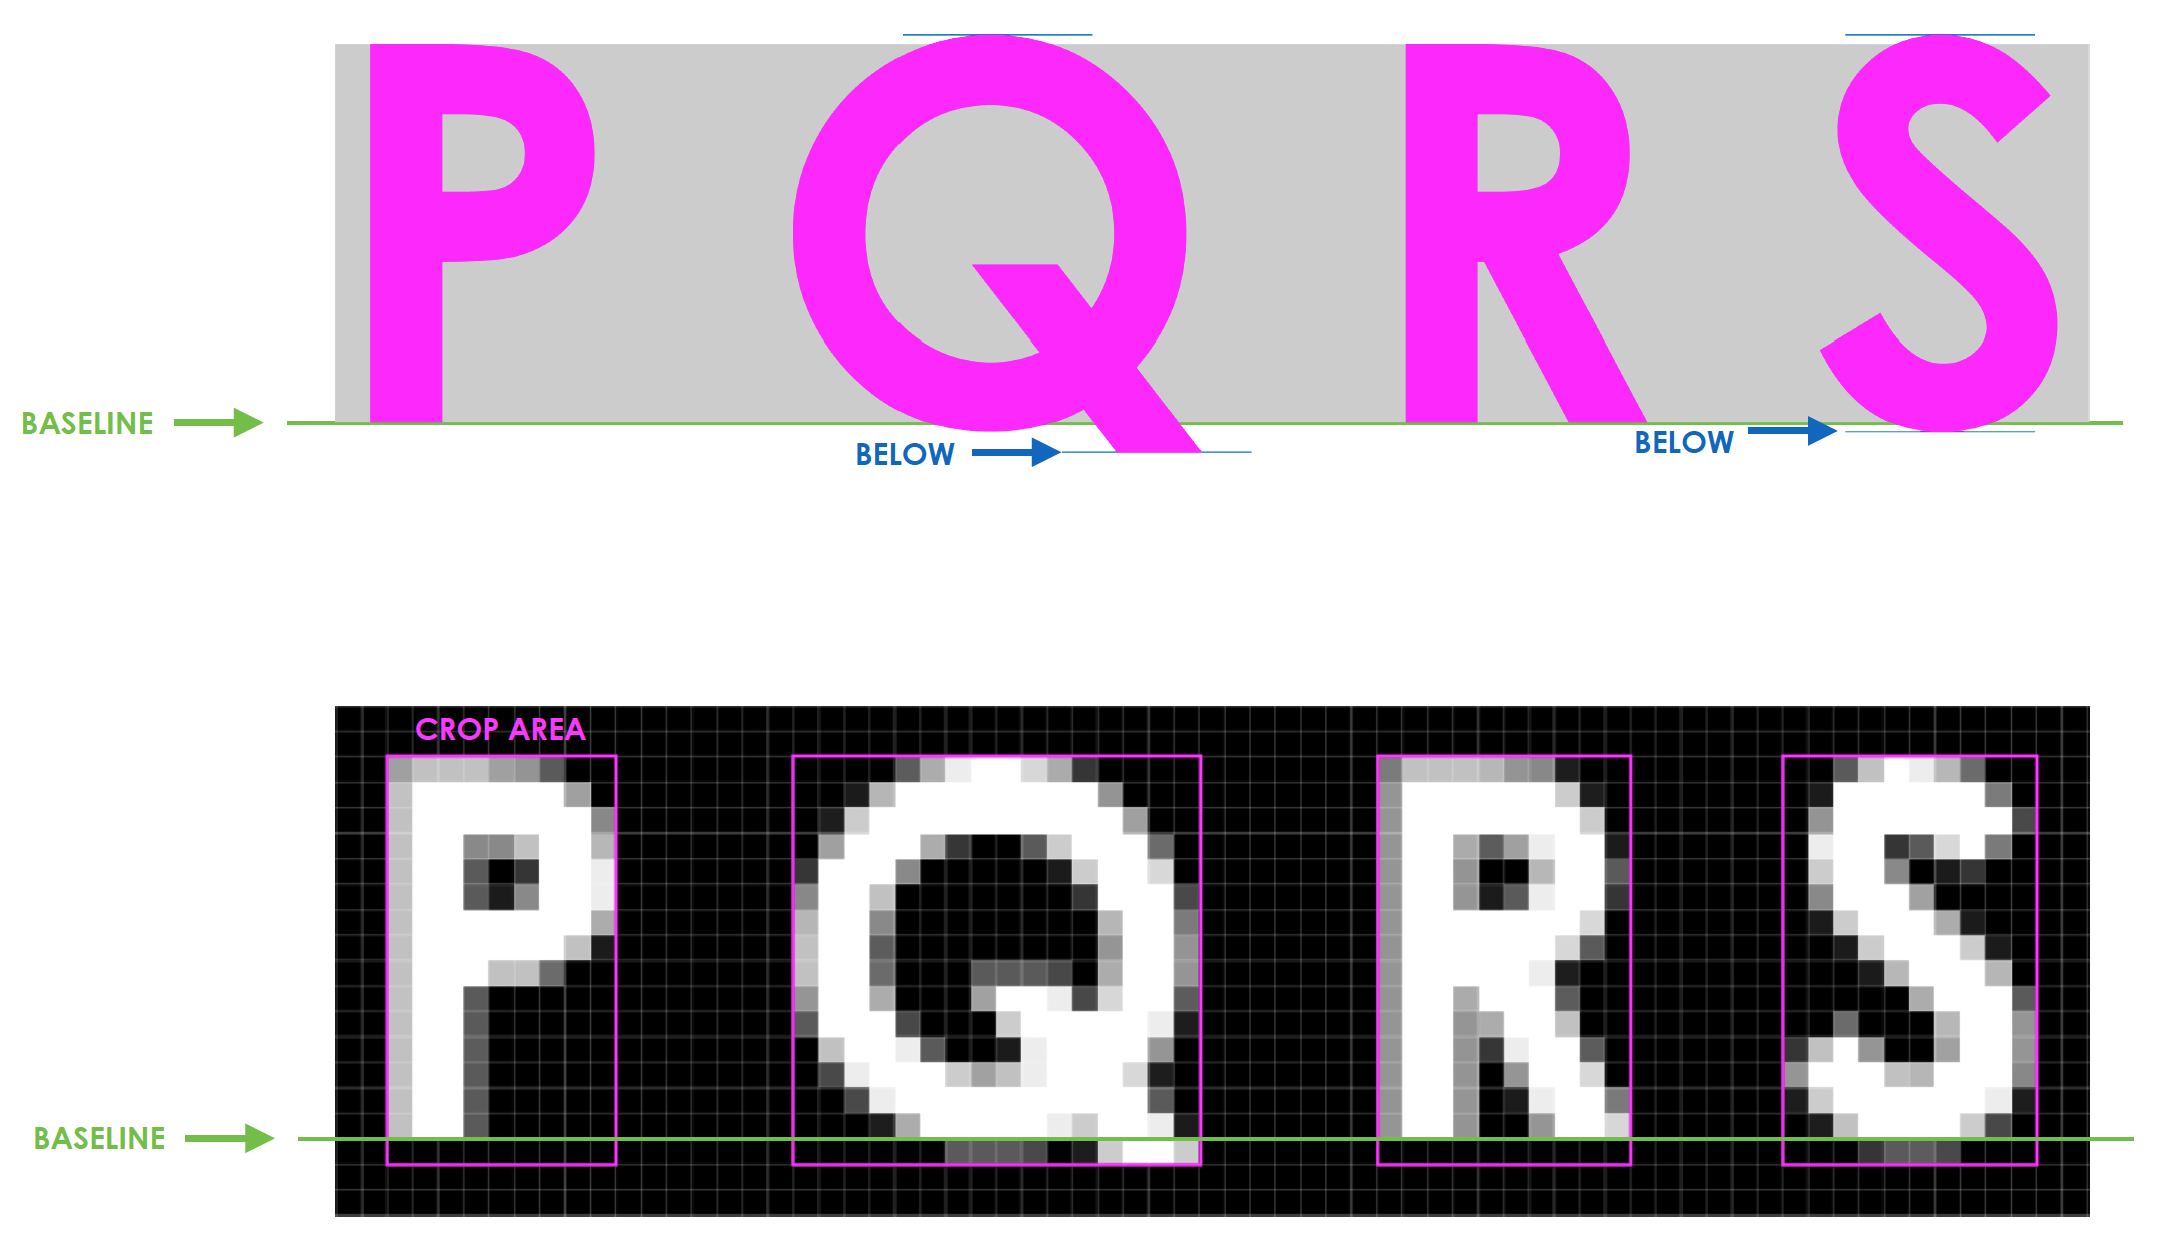 Glyphs aligned to baseline in vector format (top), then exported to rasterized bitmap format (bottom)